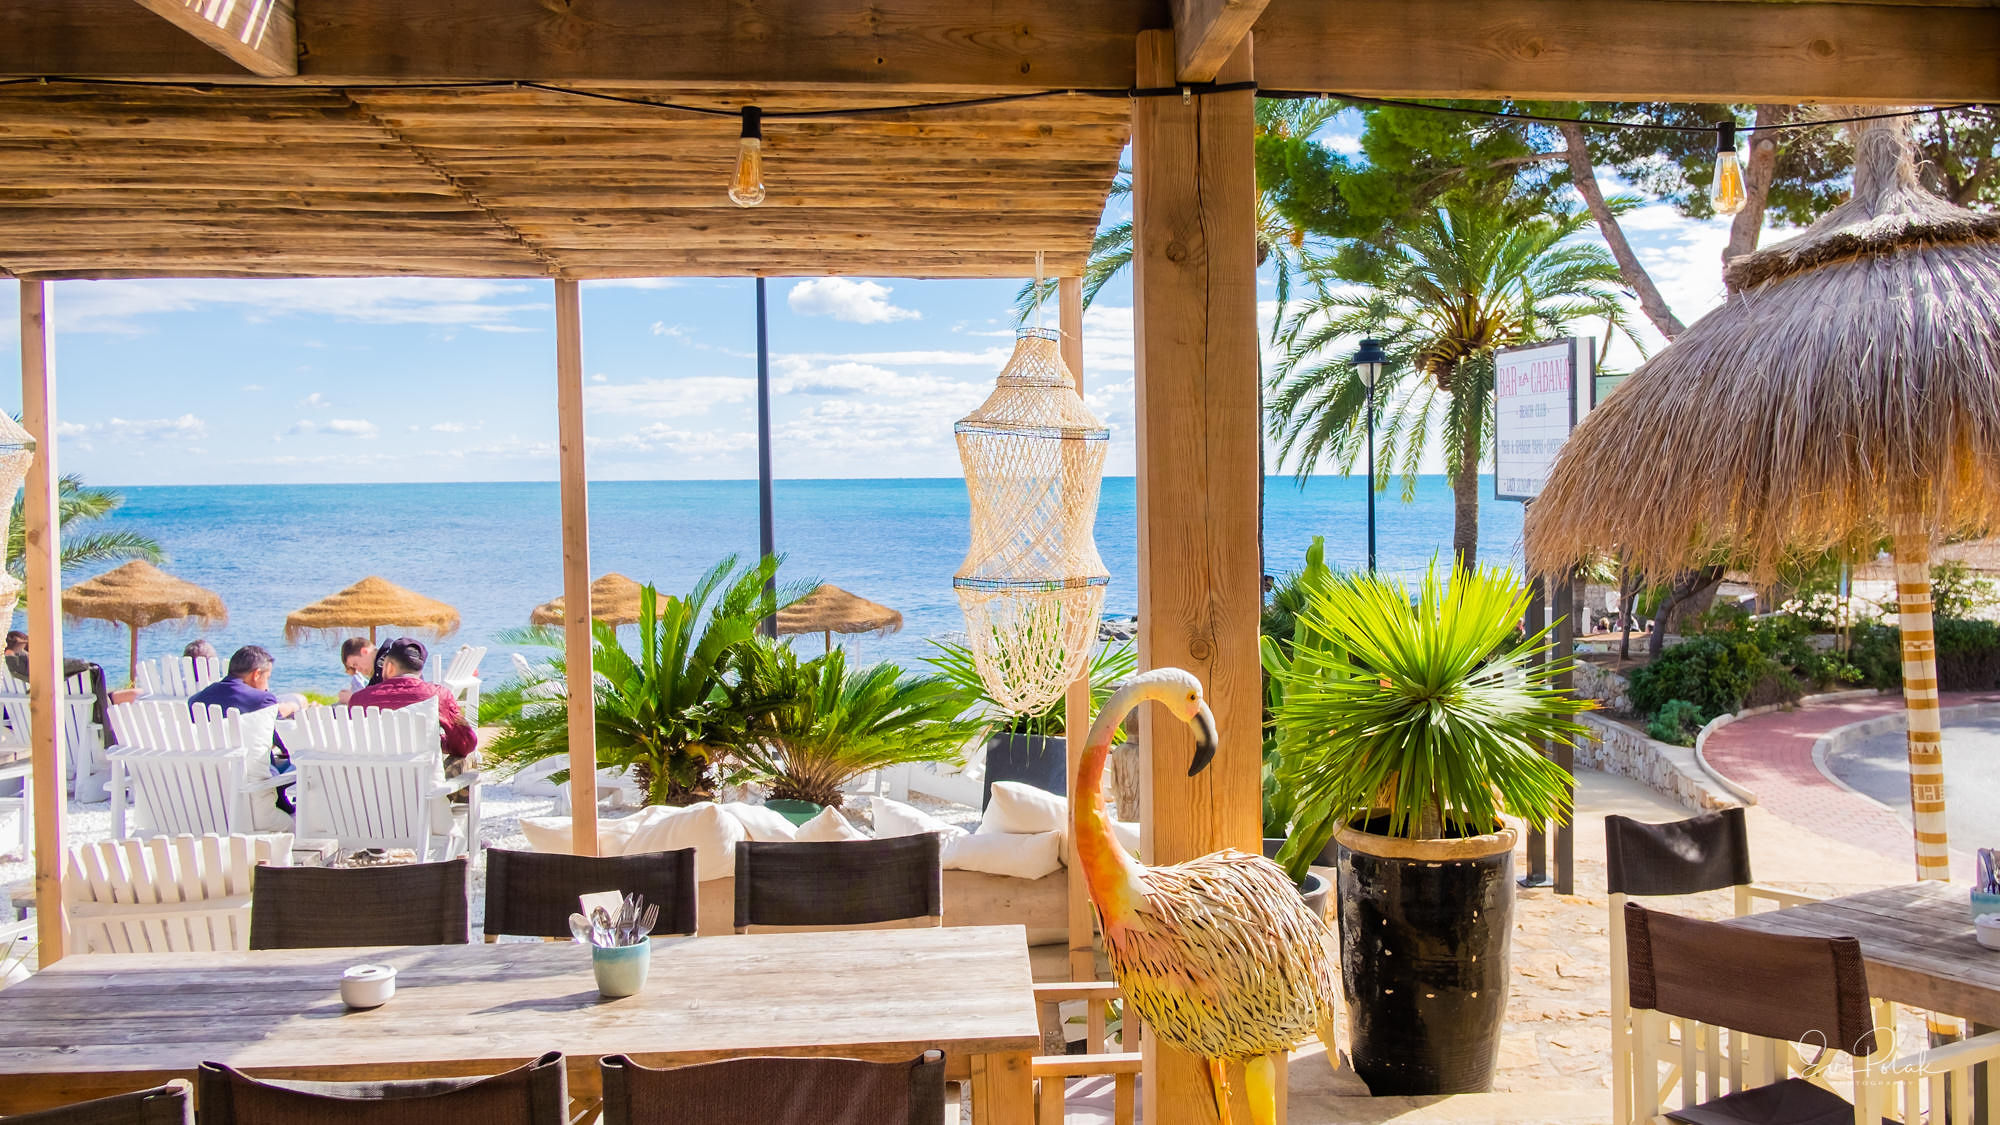 The place to be - in moraira